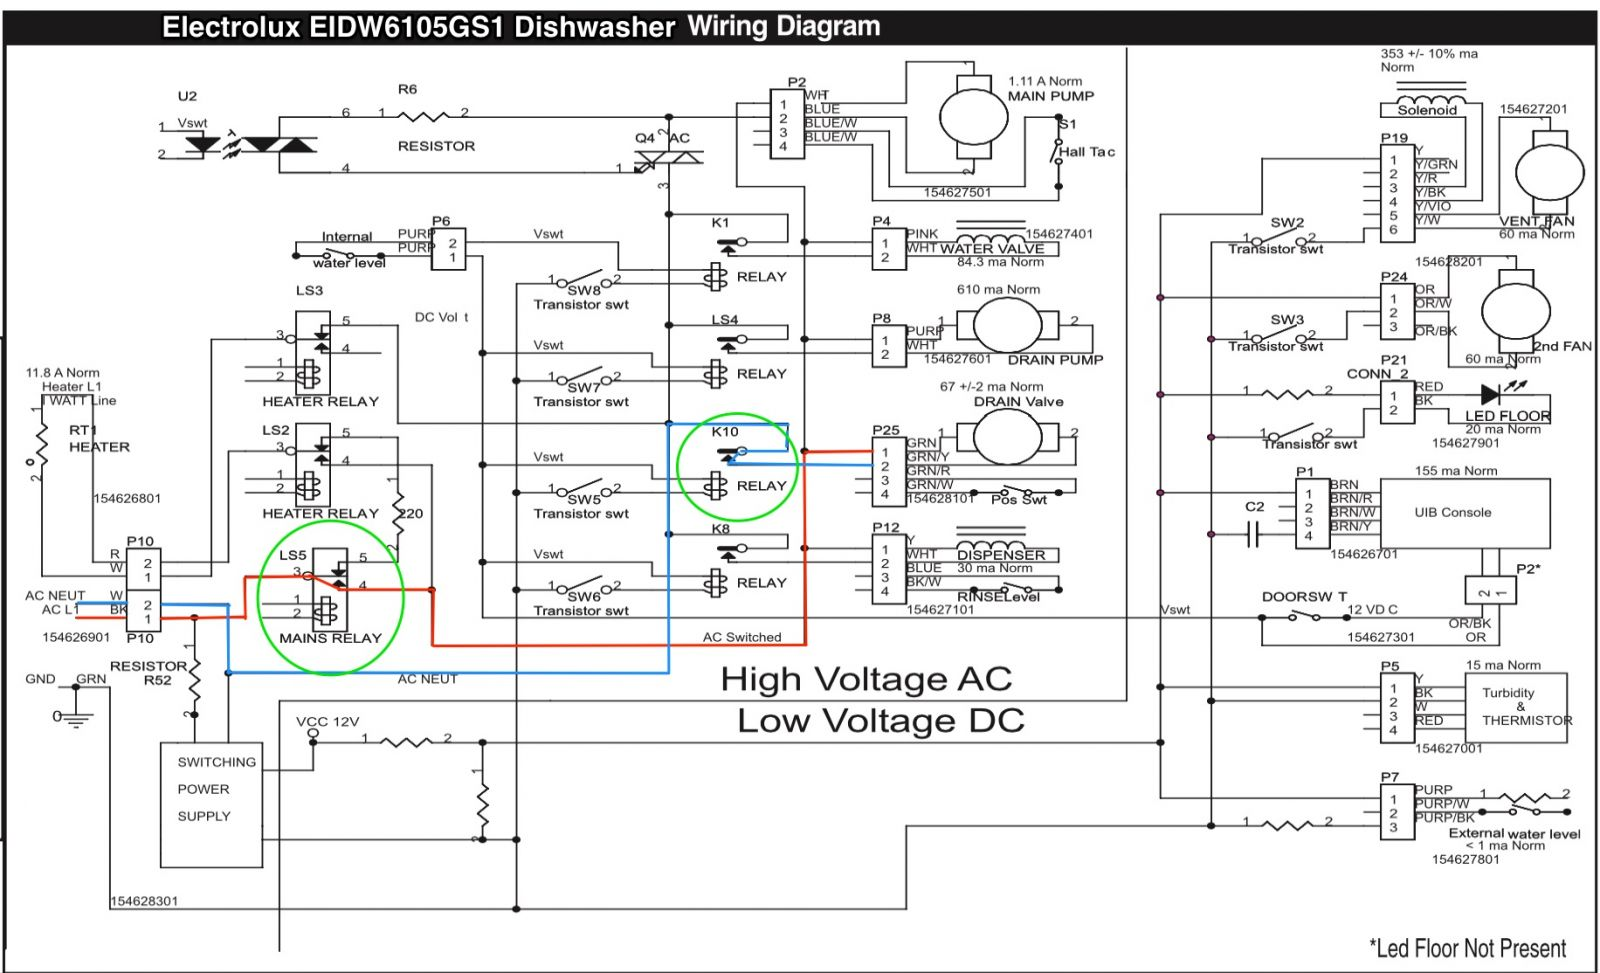 electrolux eidw6105gs1 dishwasher wiring diagram - the appliantology  gallery - appliantology.org - a master samurai tech appliance repair dojo  appliantology